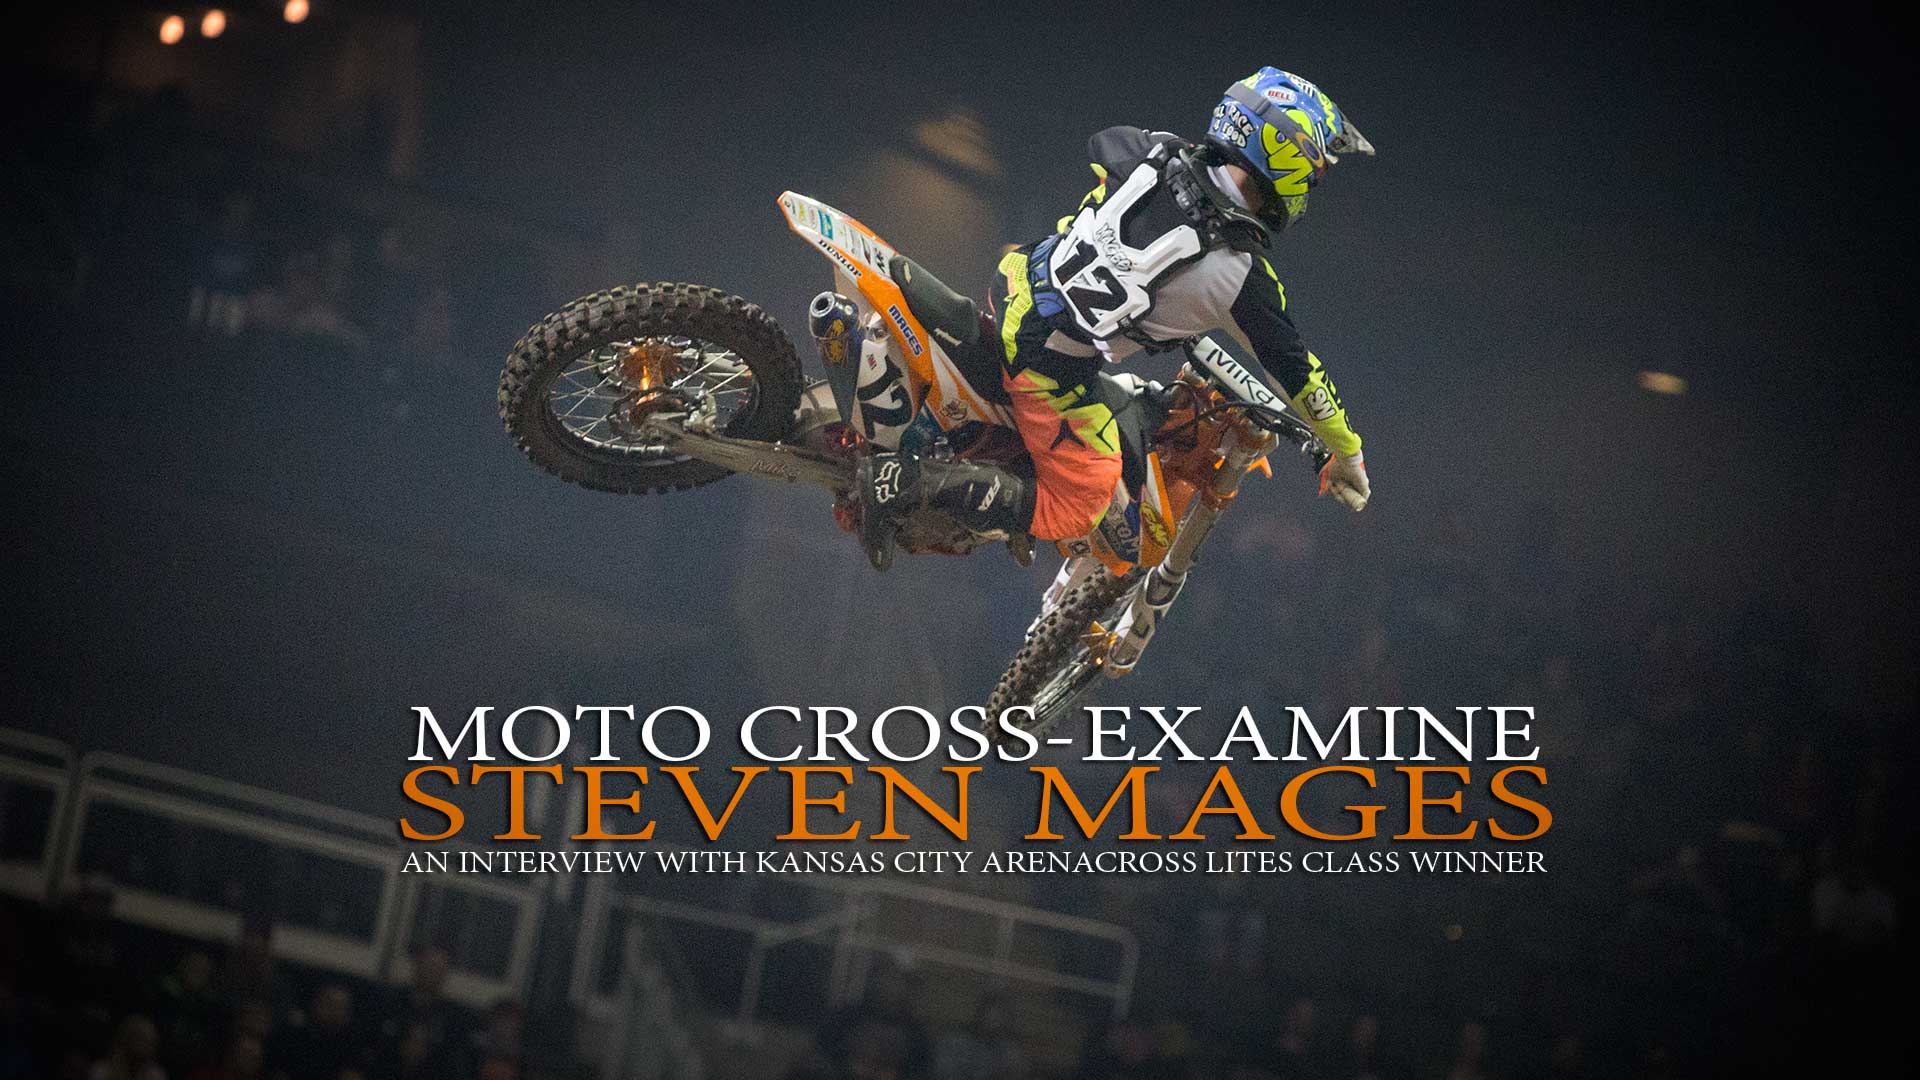 Moto Cross-Examine: Steven Mages